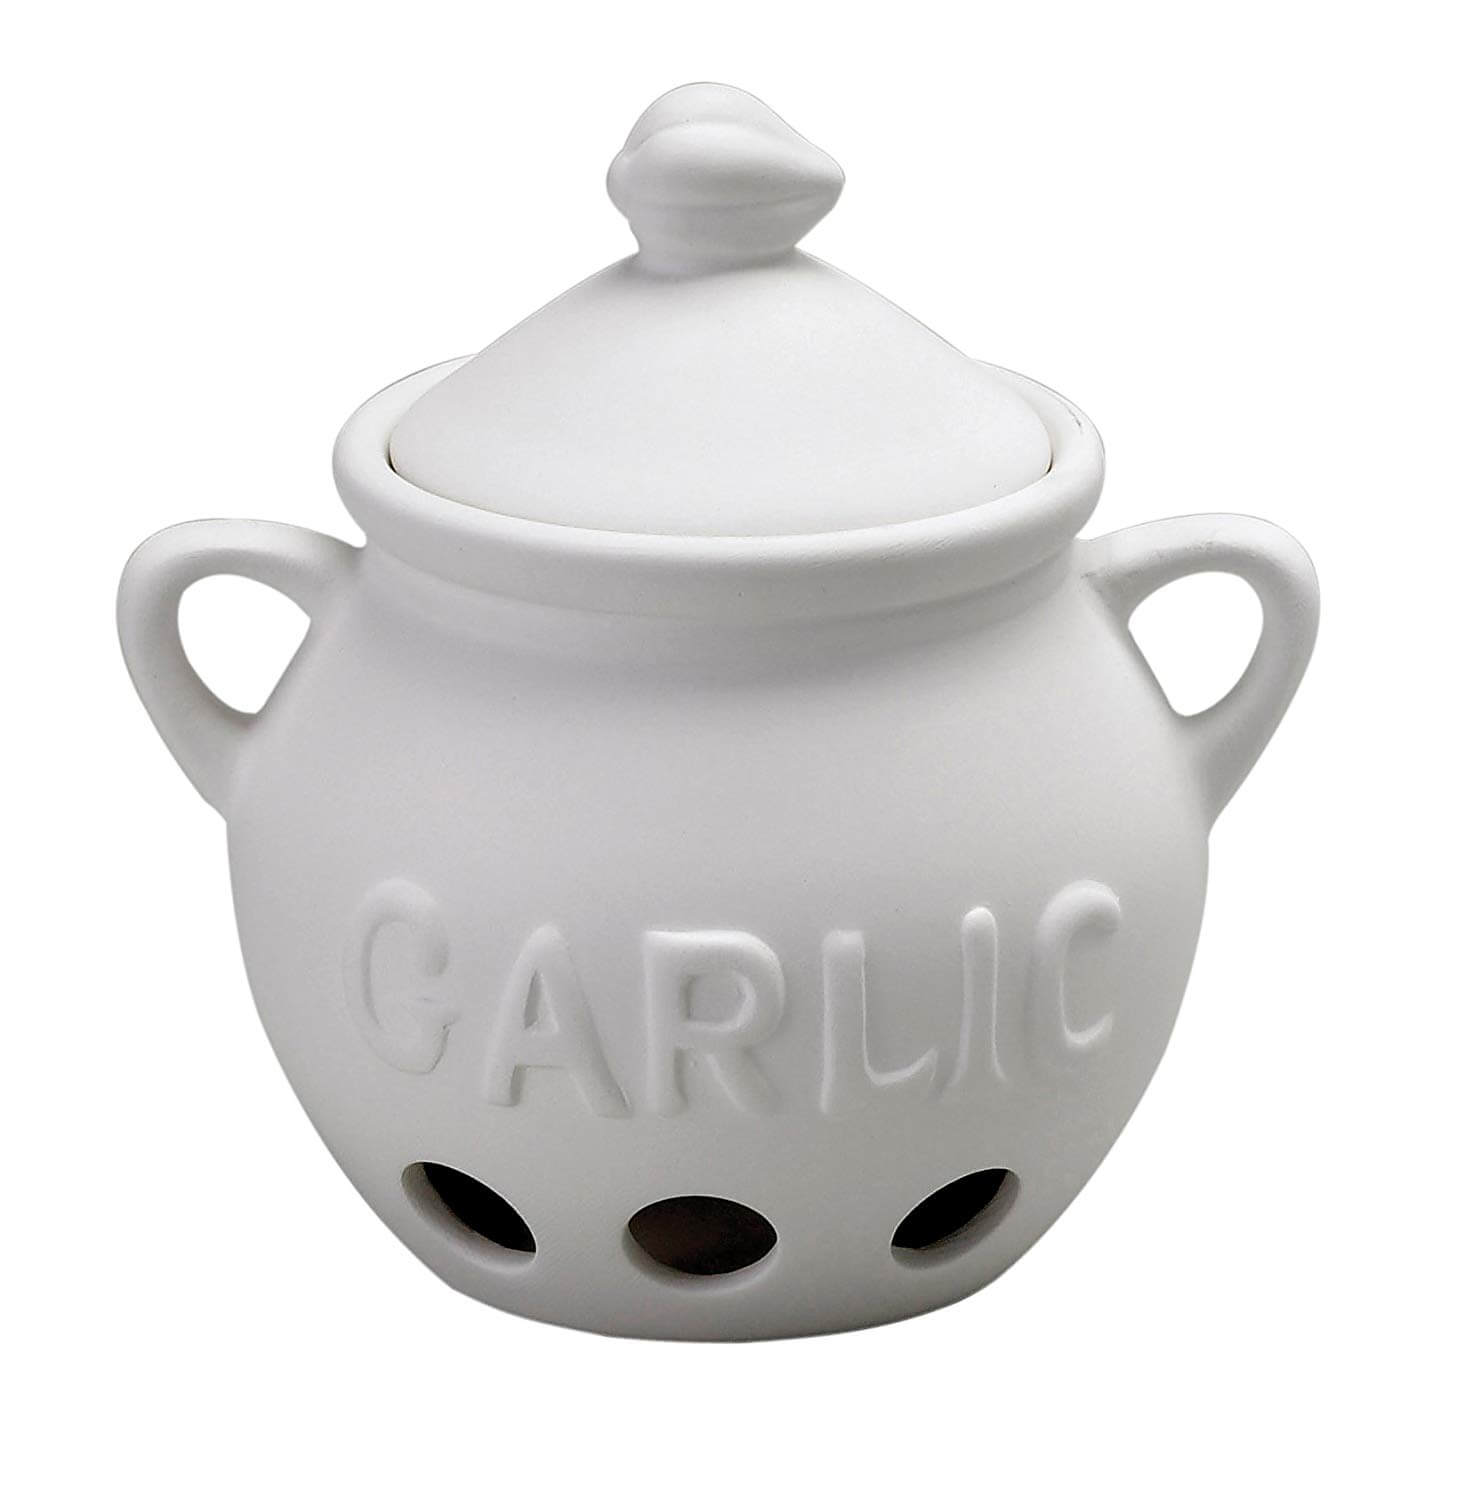 HIC Harold Import Co. Garlic keeper